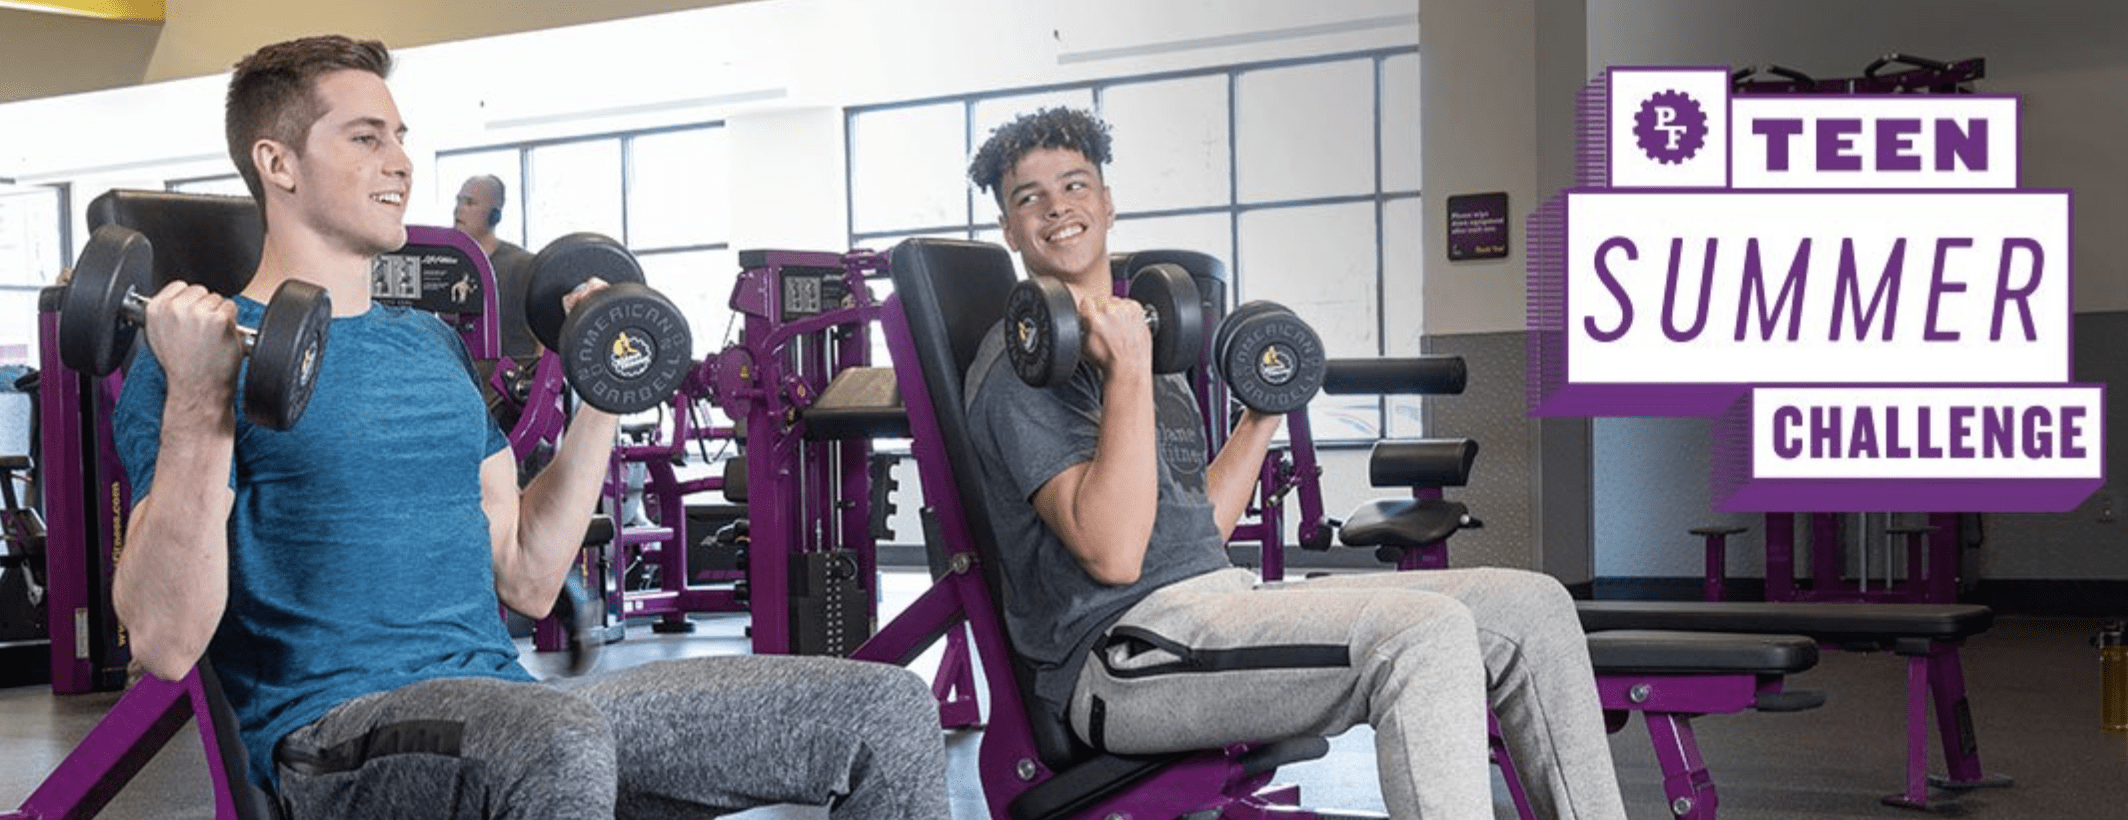 Planet Fitness Discount Teens workout for free